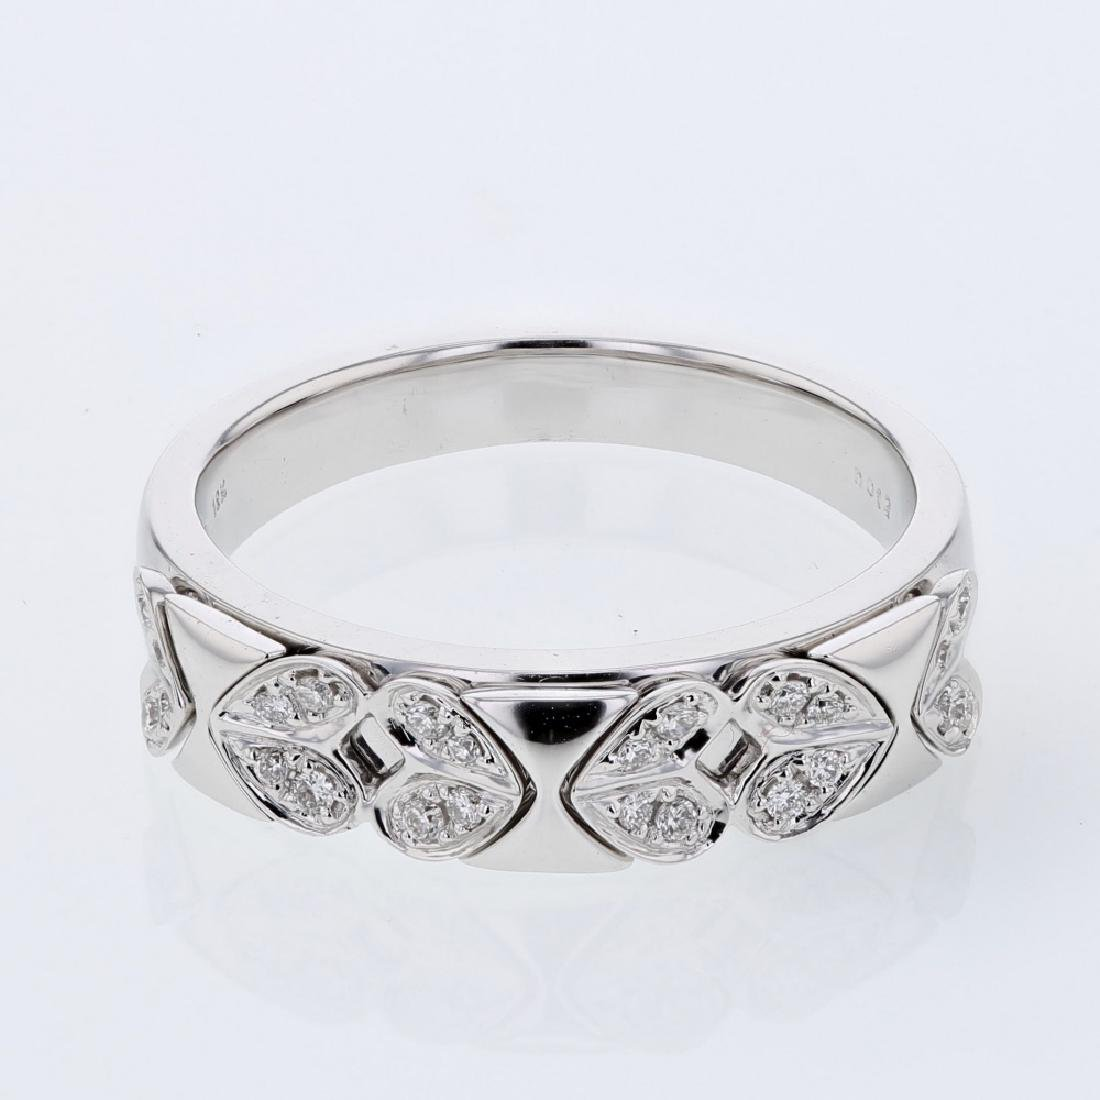 0.12 CTW Diamond Band Ring 18K White Gold - REF-48W4K